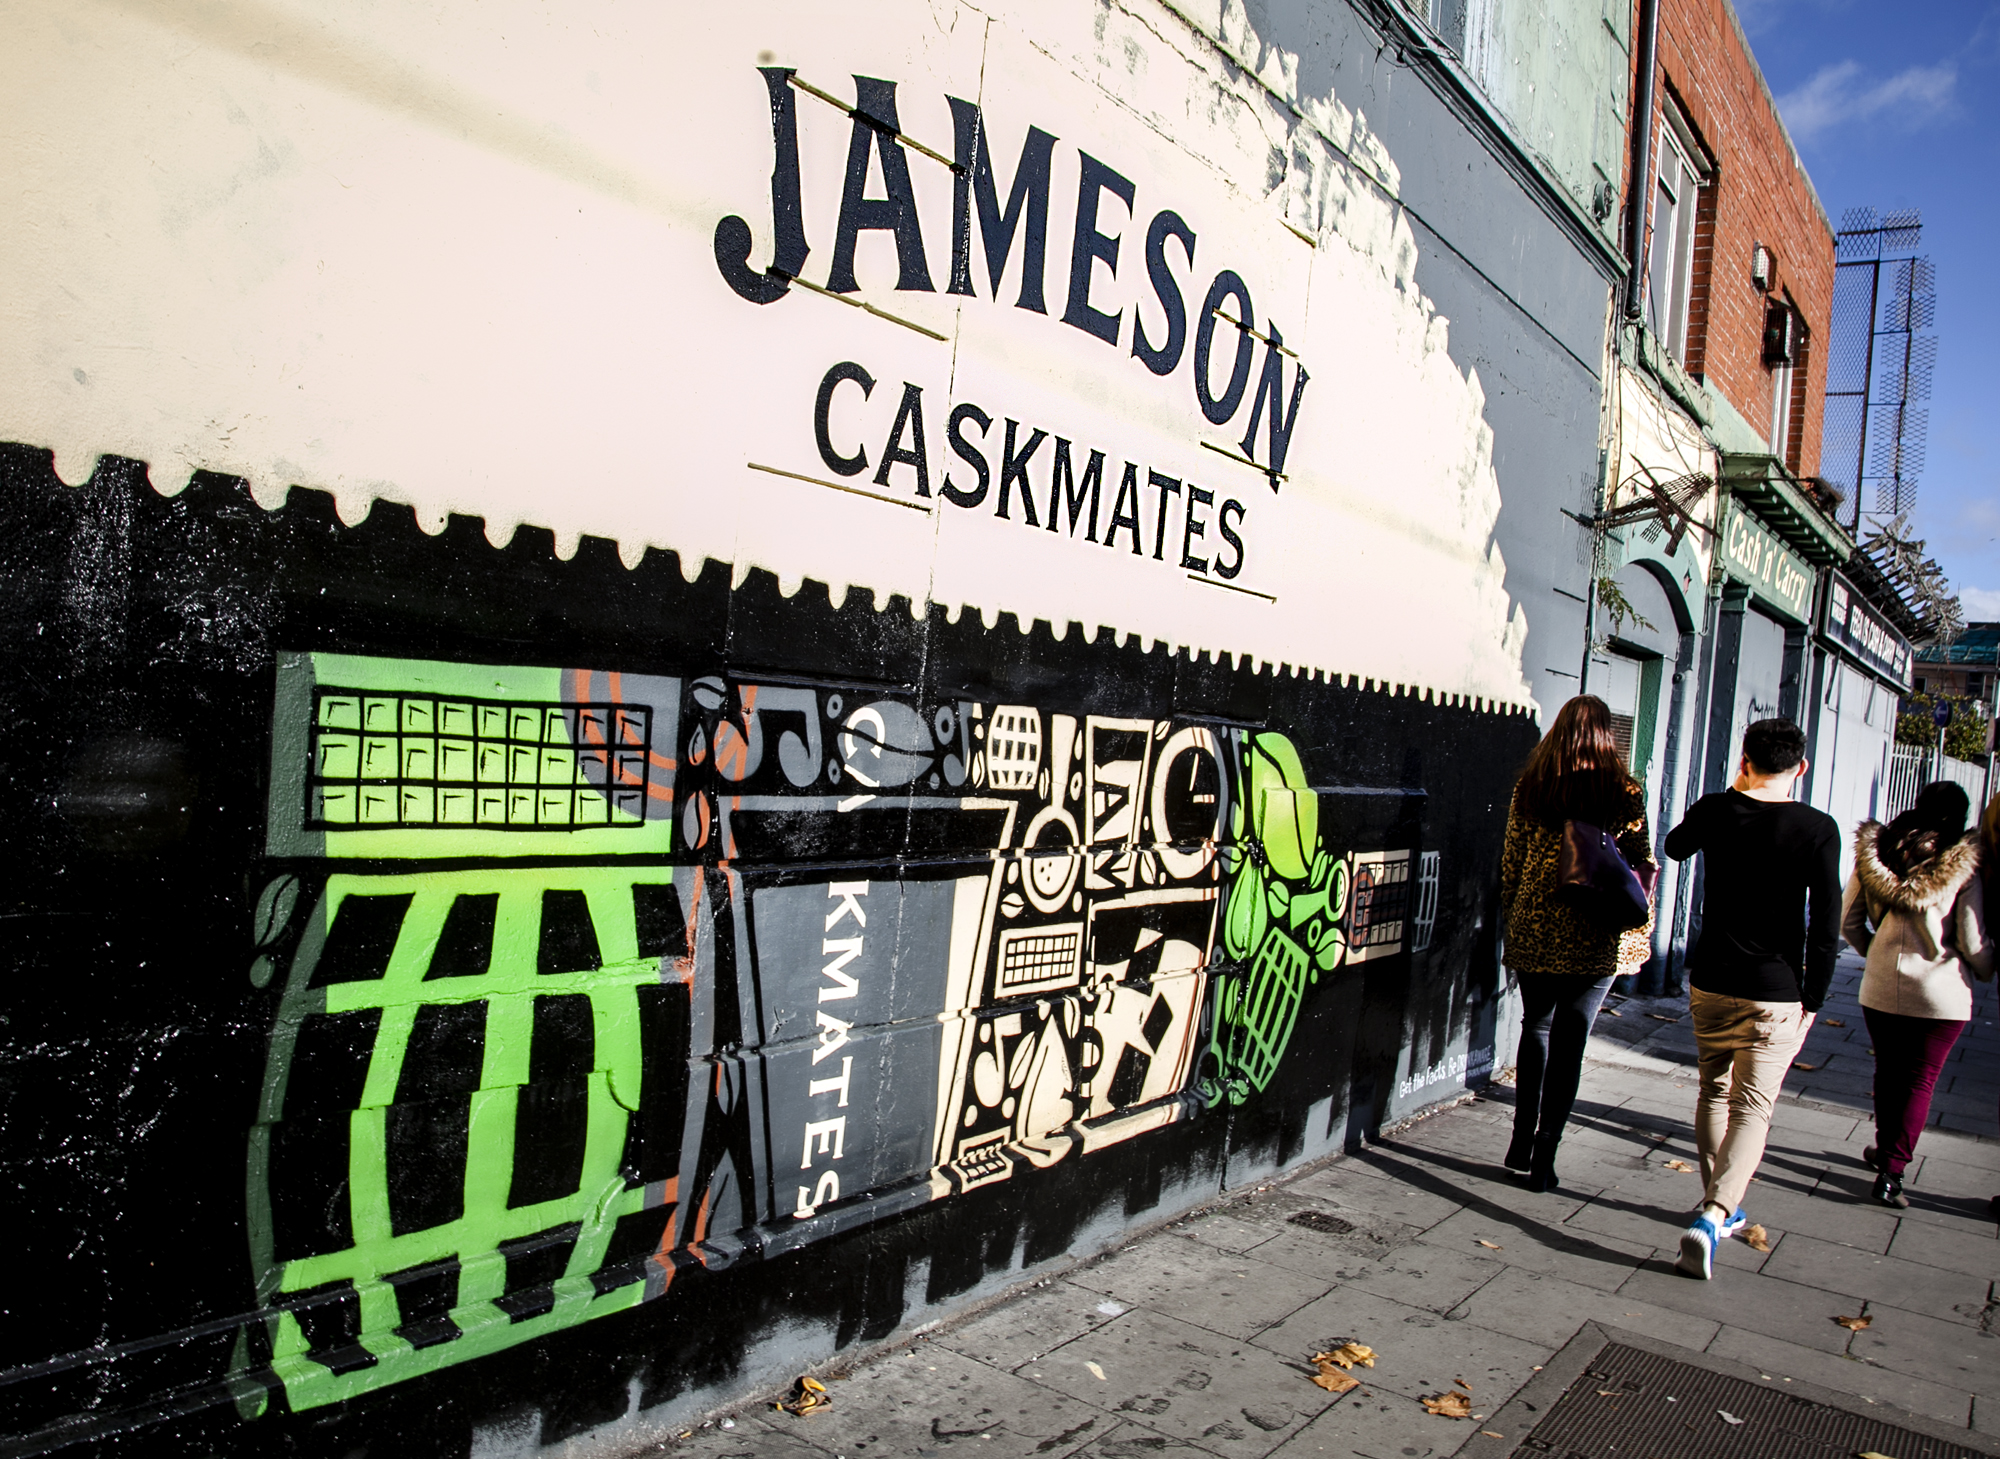 Jameson, Mary Street 2.jpg